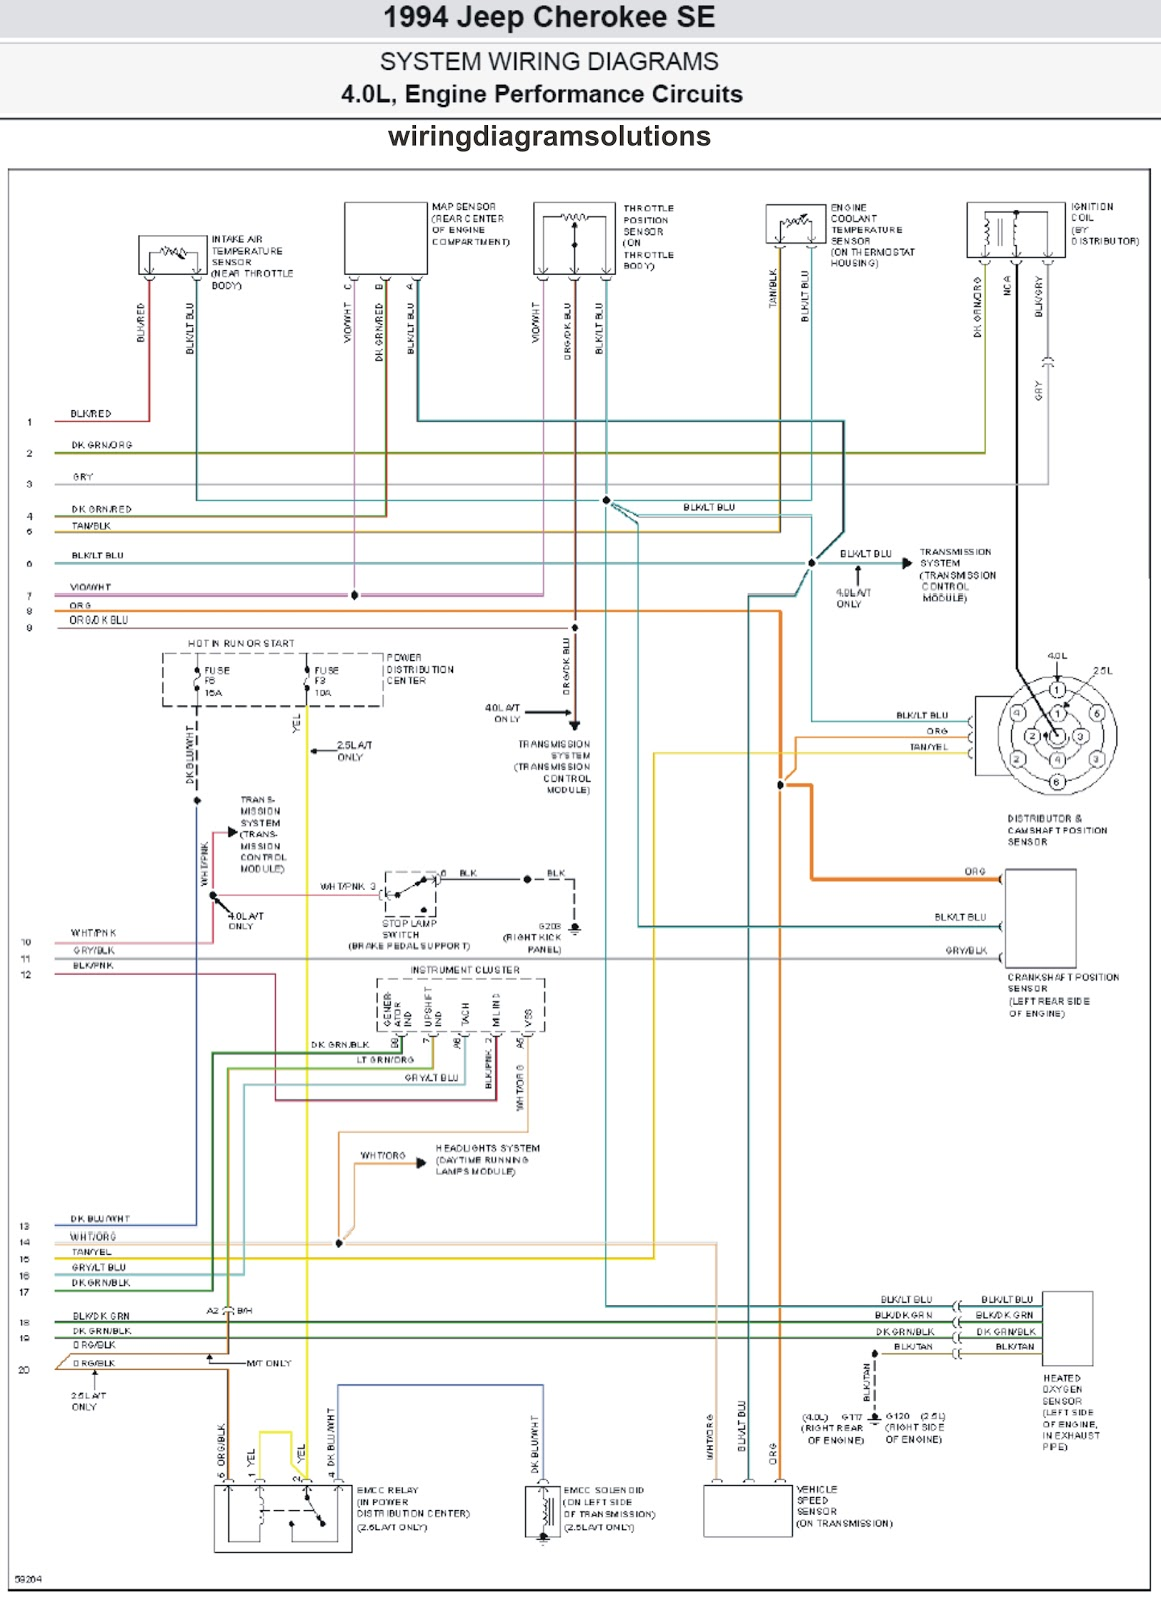 Ford 5f9t 18c869 Ag Radio Wiring Diagram Free Download Toyota Hiace Comfortable Gmc Factory Stereo At